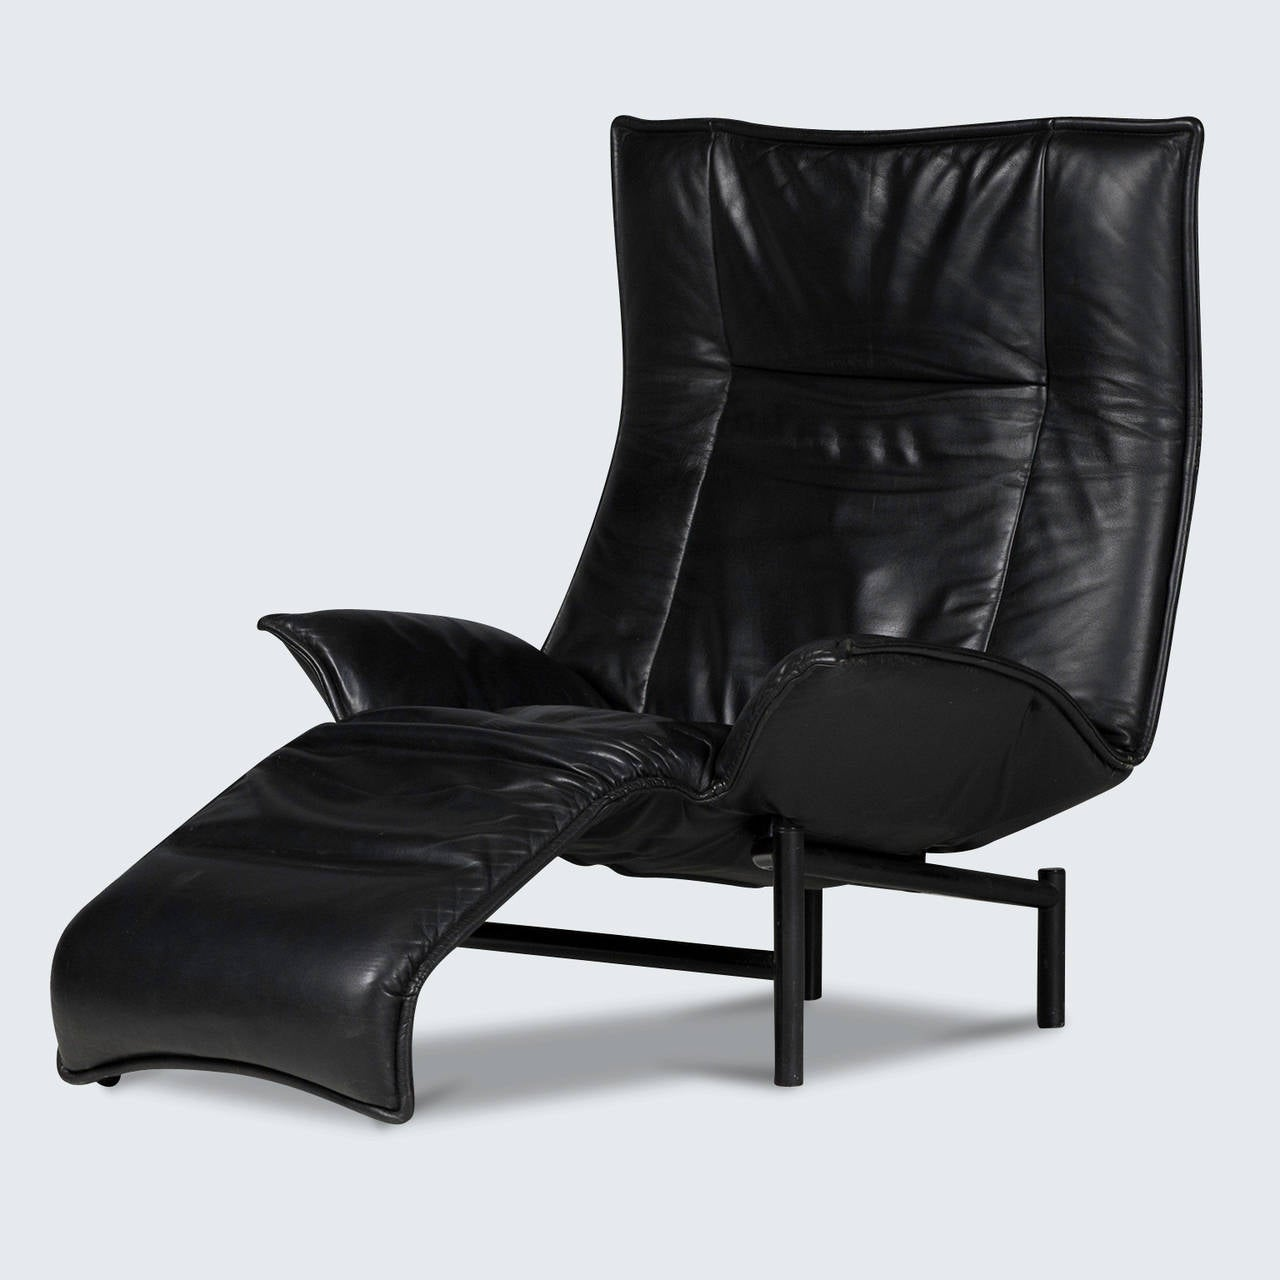 Verandah armchair in black leather 1983 for sale at 1stdibs